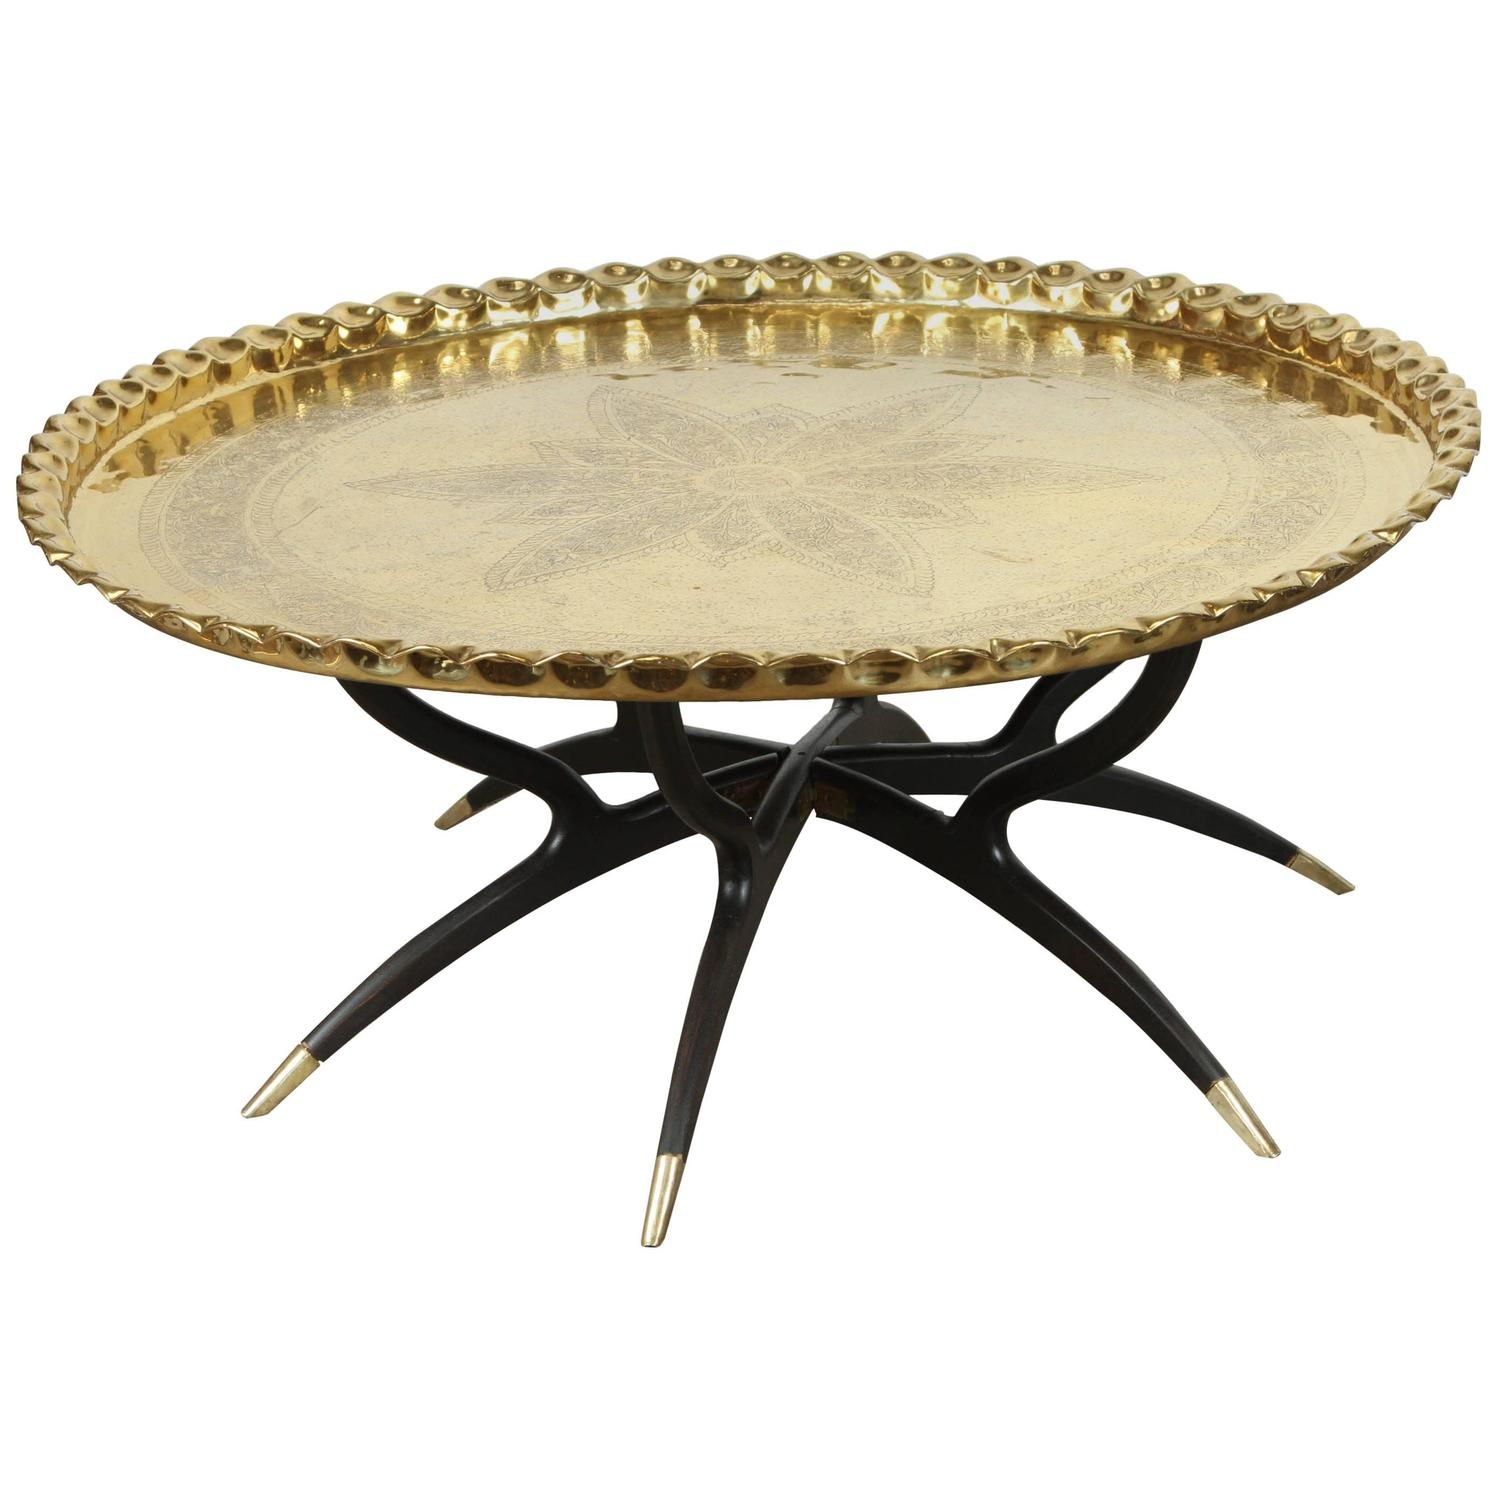 Coffee Table Legs Brass: Large Polished Brass Tray Coffee Table On Spider-Leg For